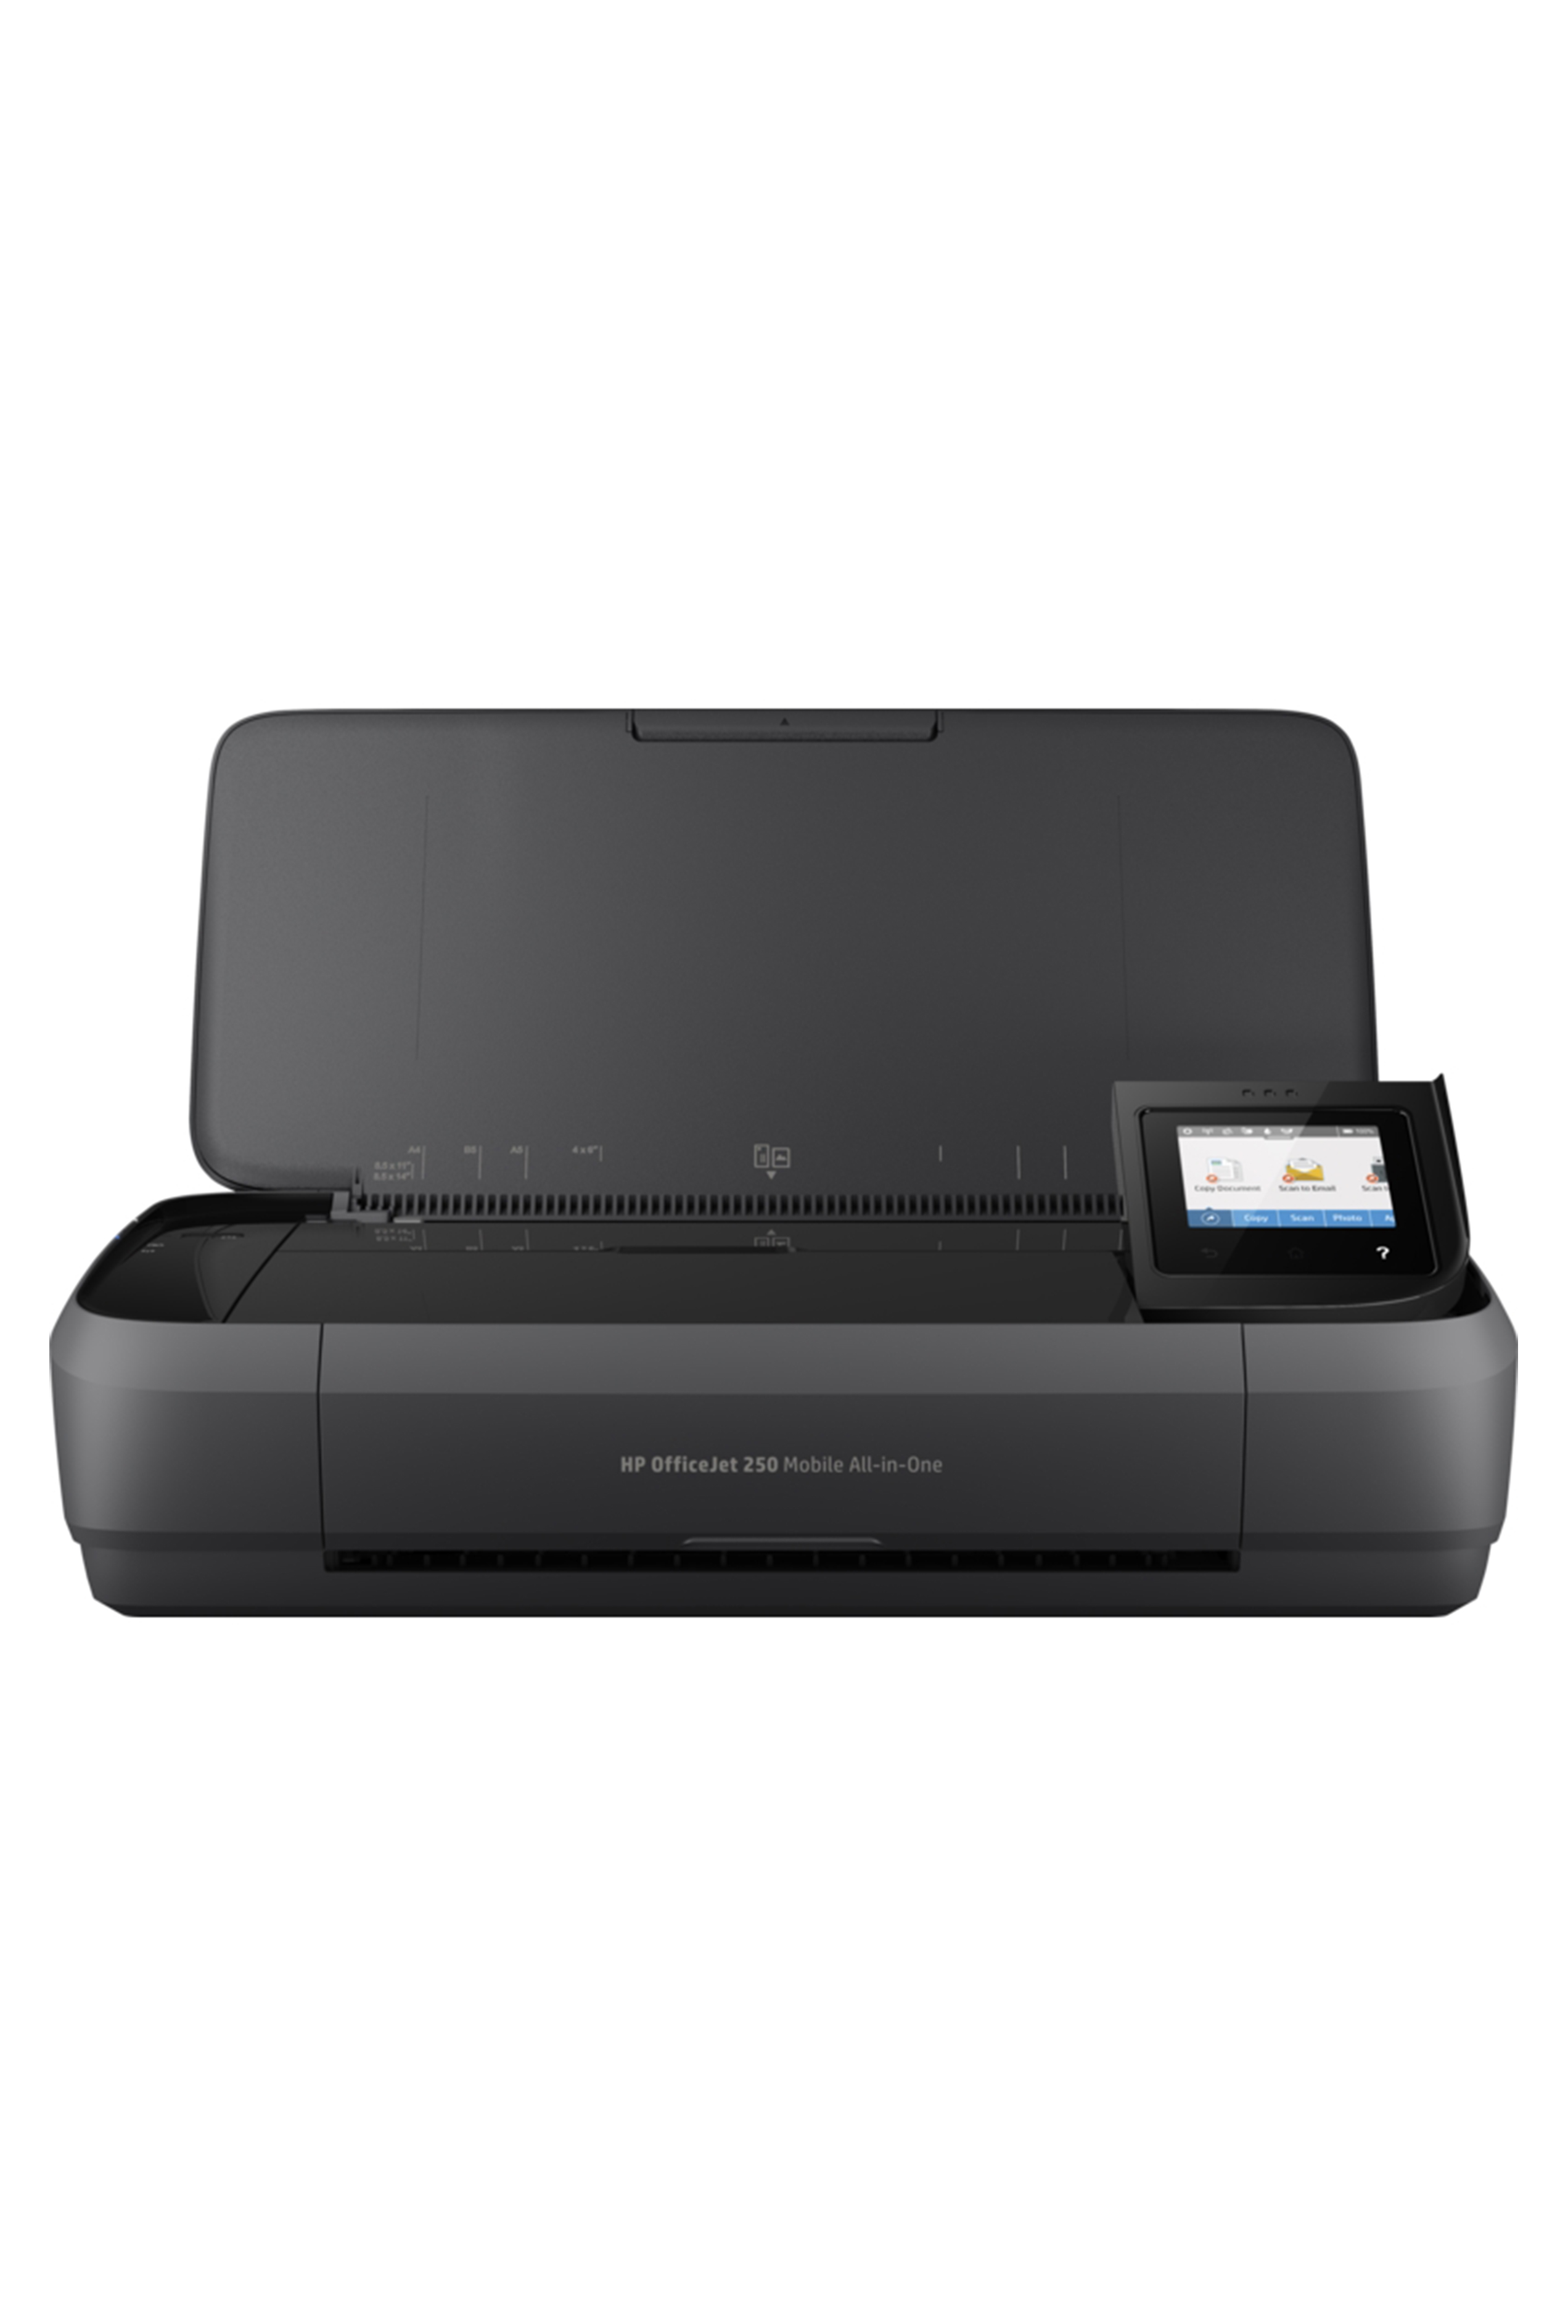 HP OfficeJet 250 Mobile All-in-One...